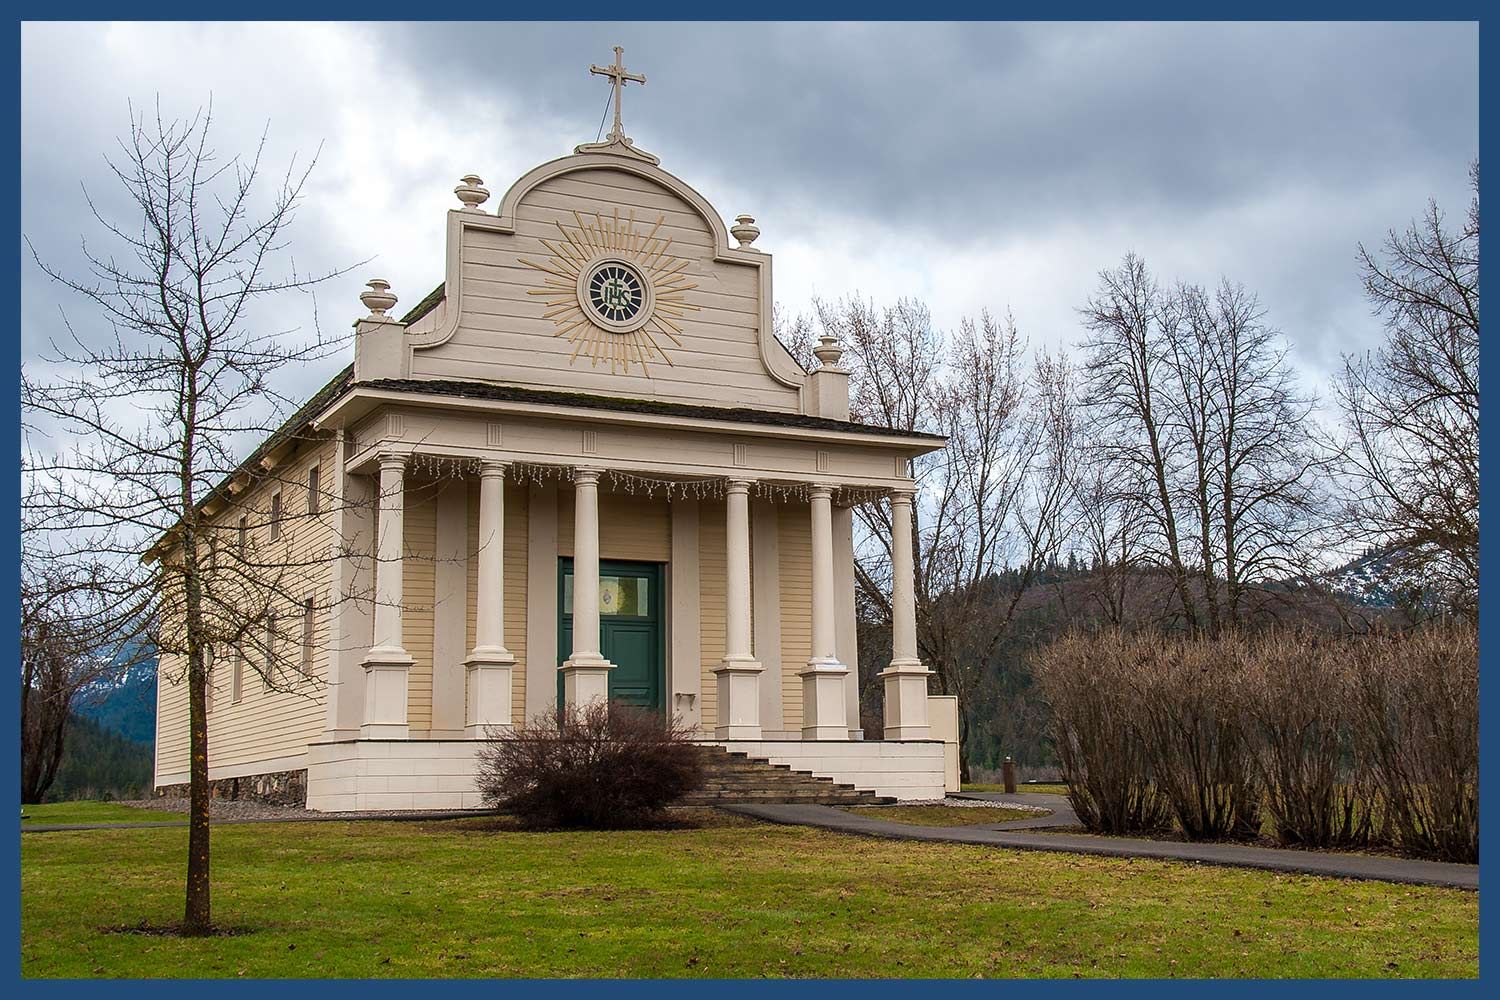 The Coeur d' Alene's Old Mission in Idaho